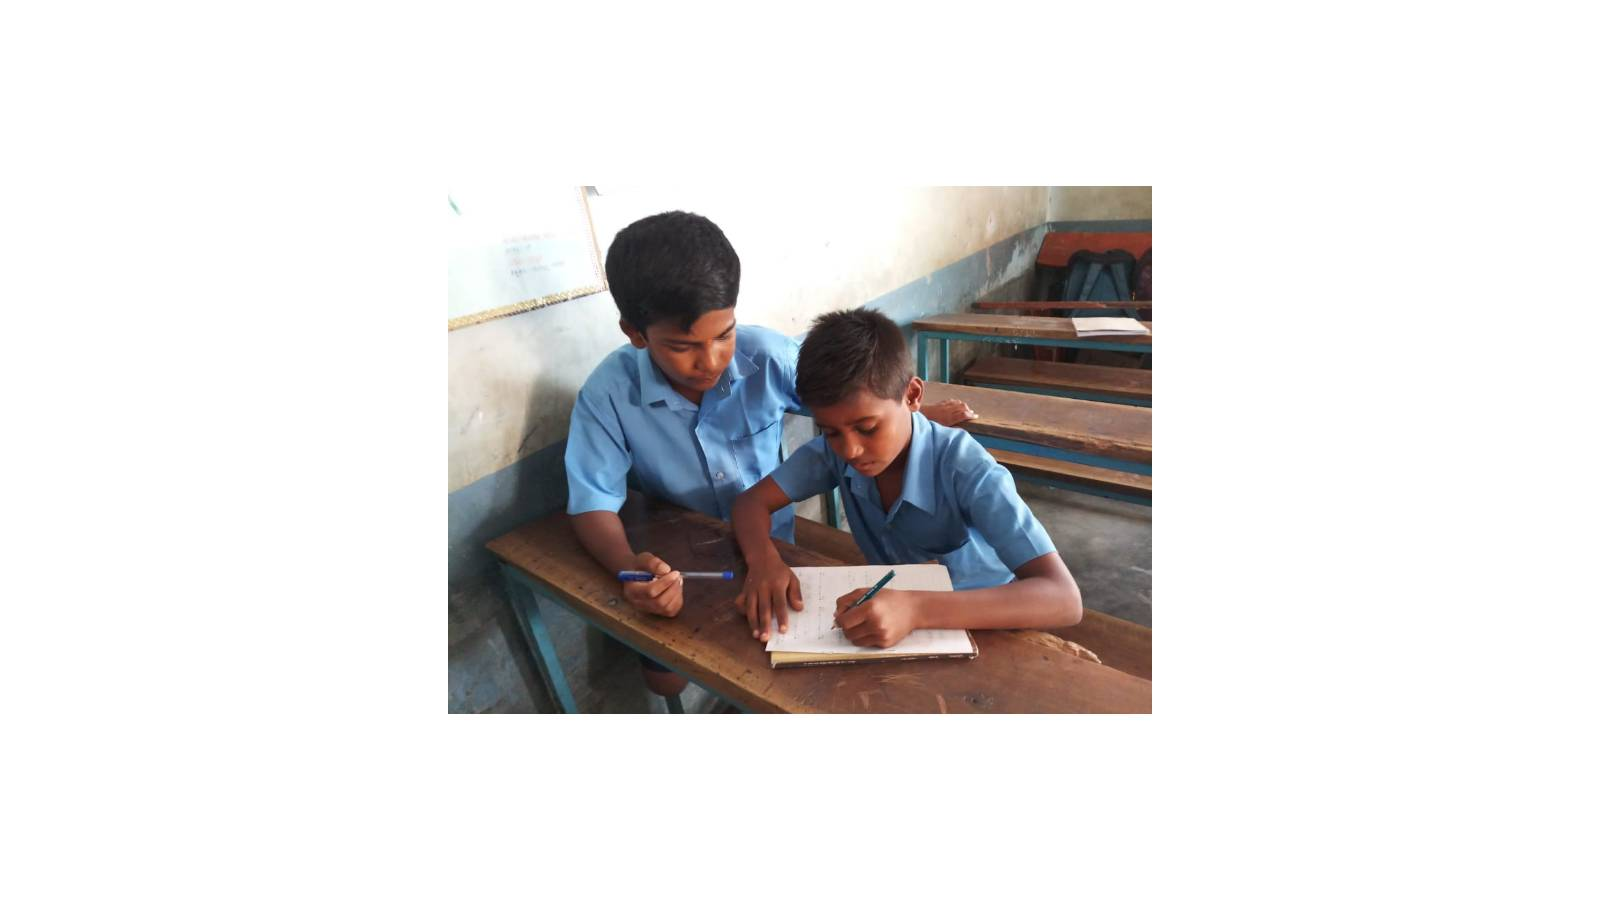 Customized Learning Materials designed suitable for each student based on his/her capability